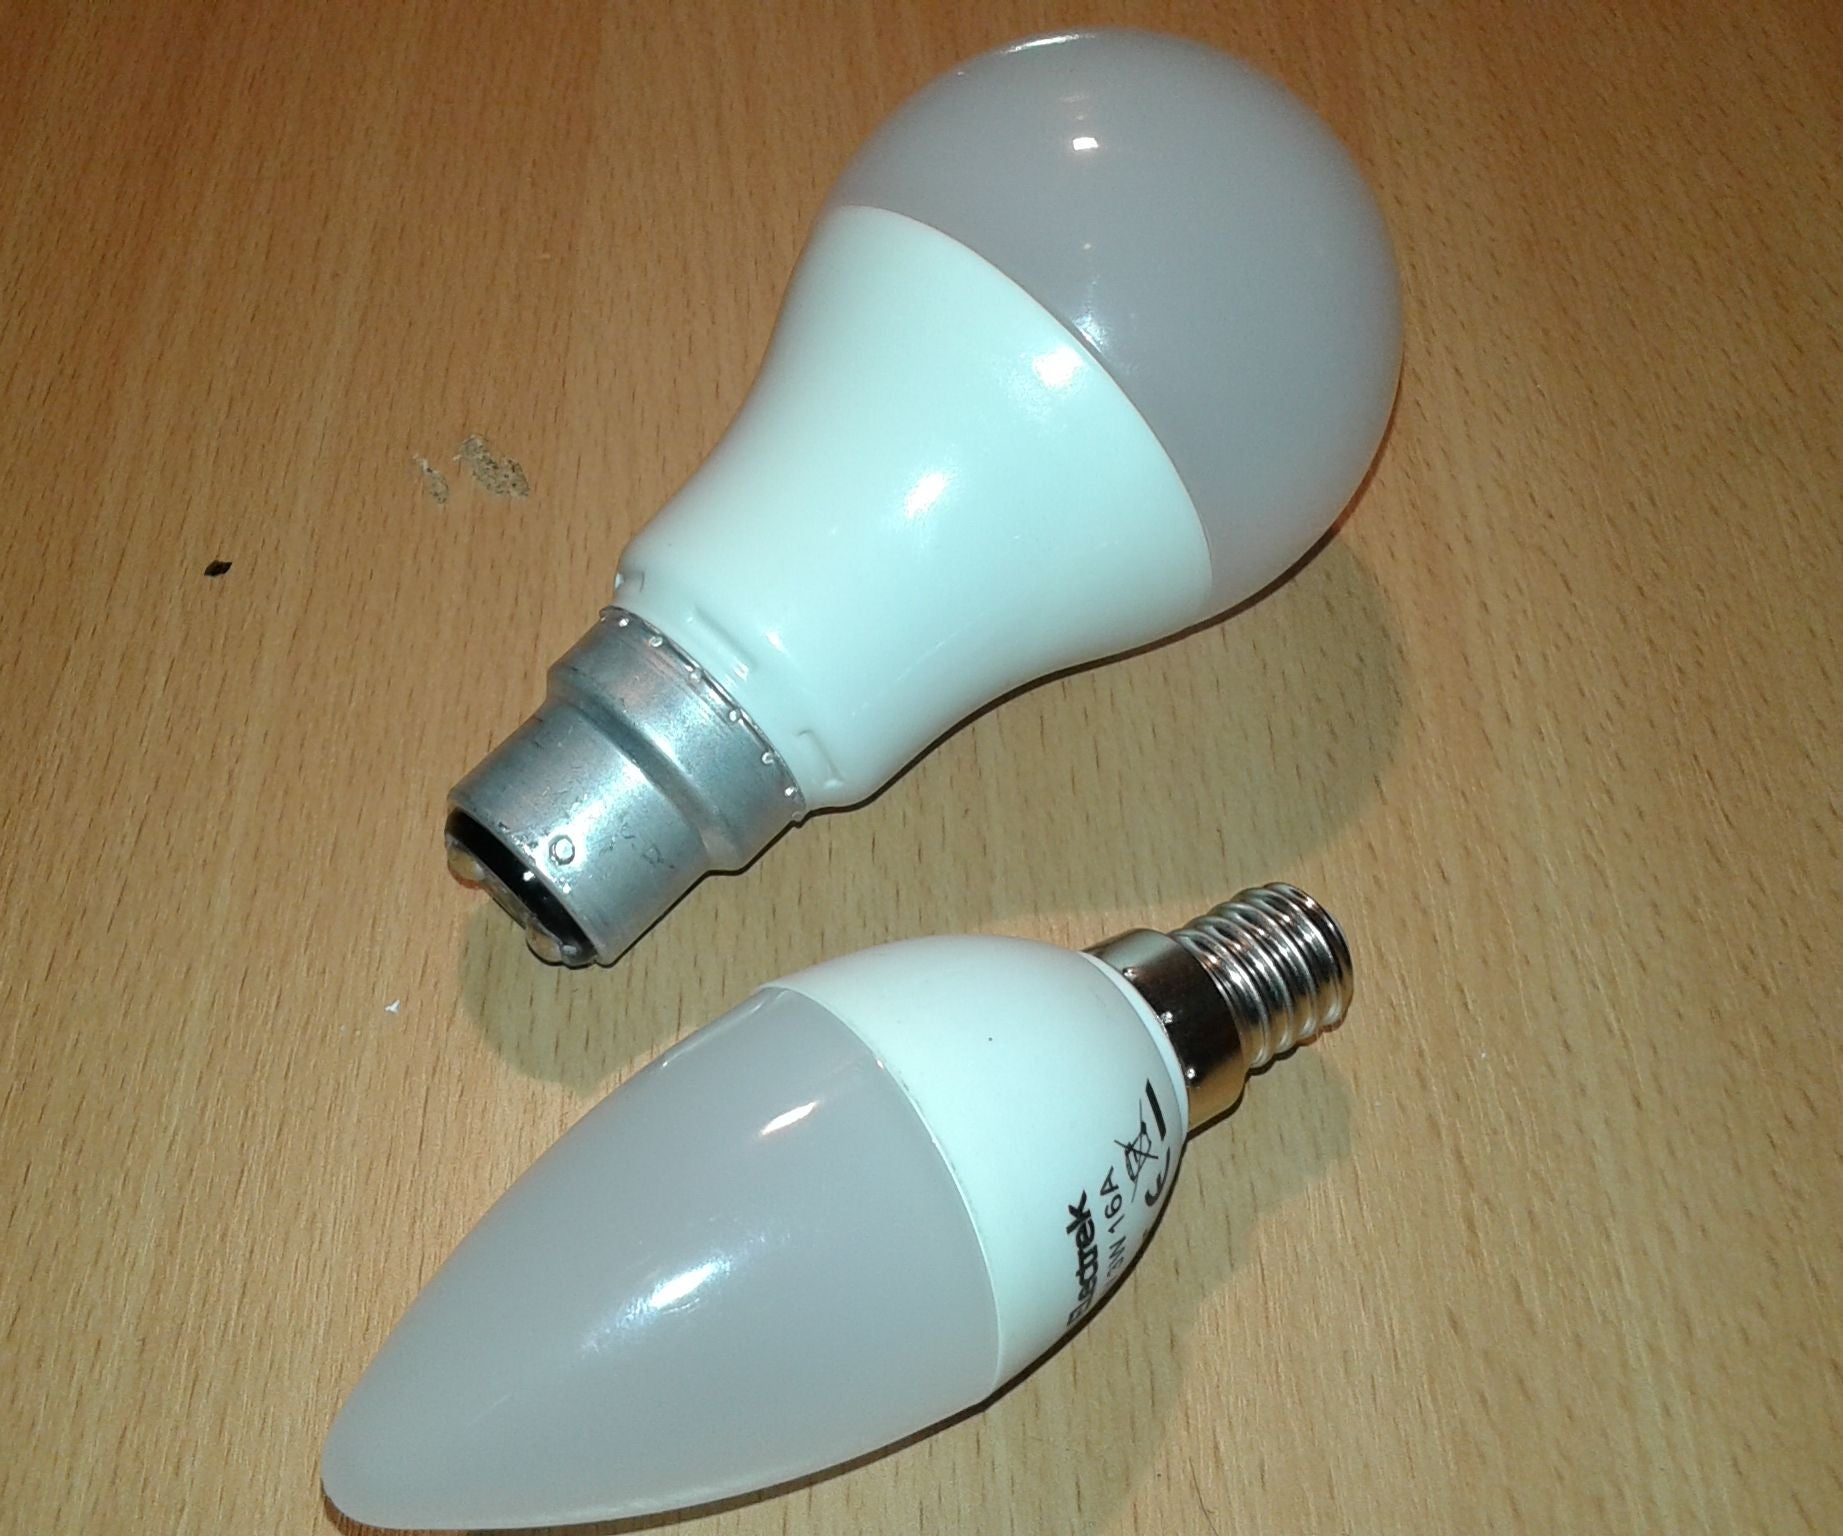 Easy 6v Fluorescent Light Ave Circuits 220v Led Bulb On Battery 5 Steps With Pictures